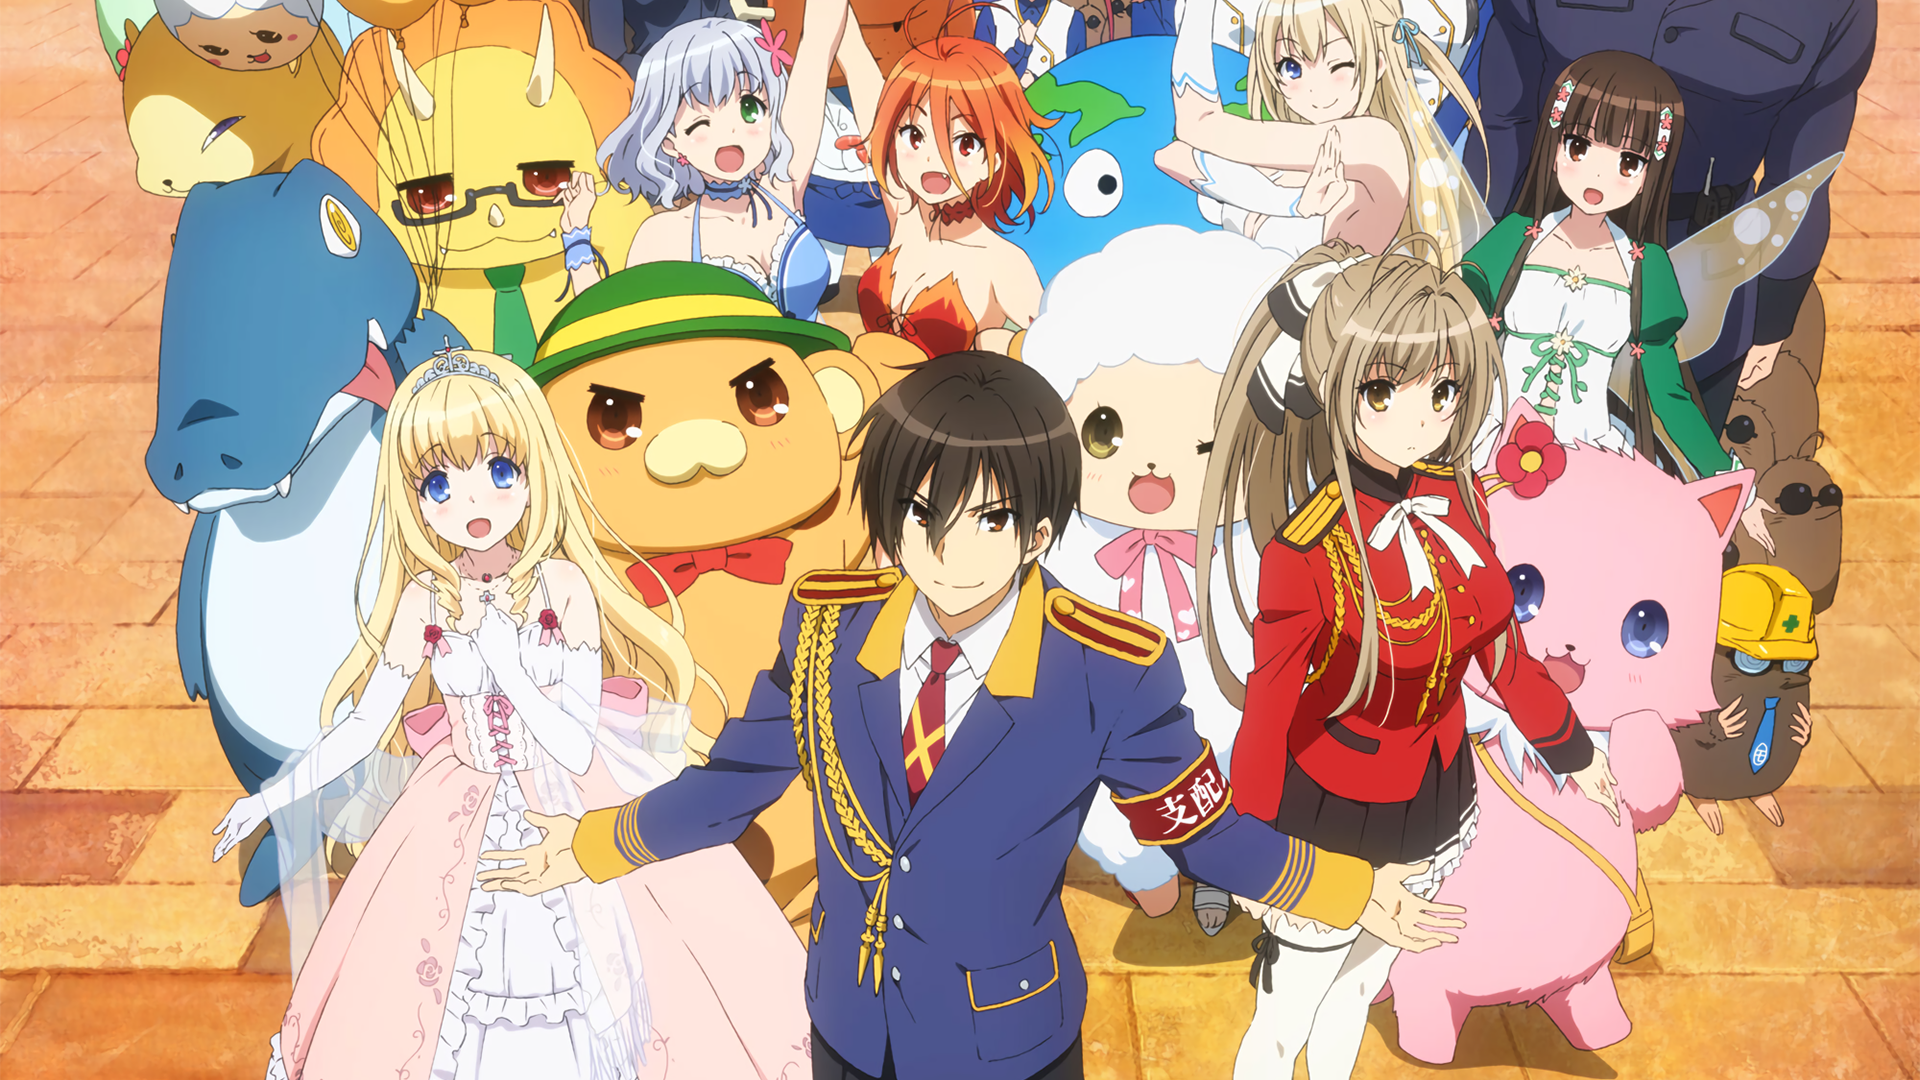 Amagi Brilliant Park Wallpaper 2   1920 X 1200 stmednet 1920x1080